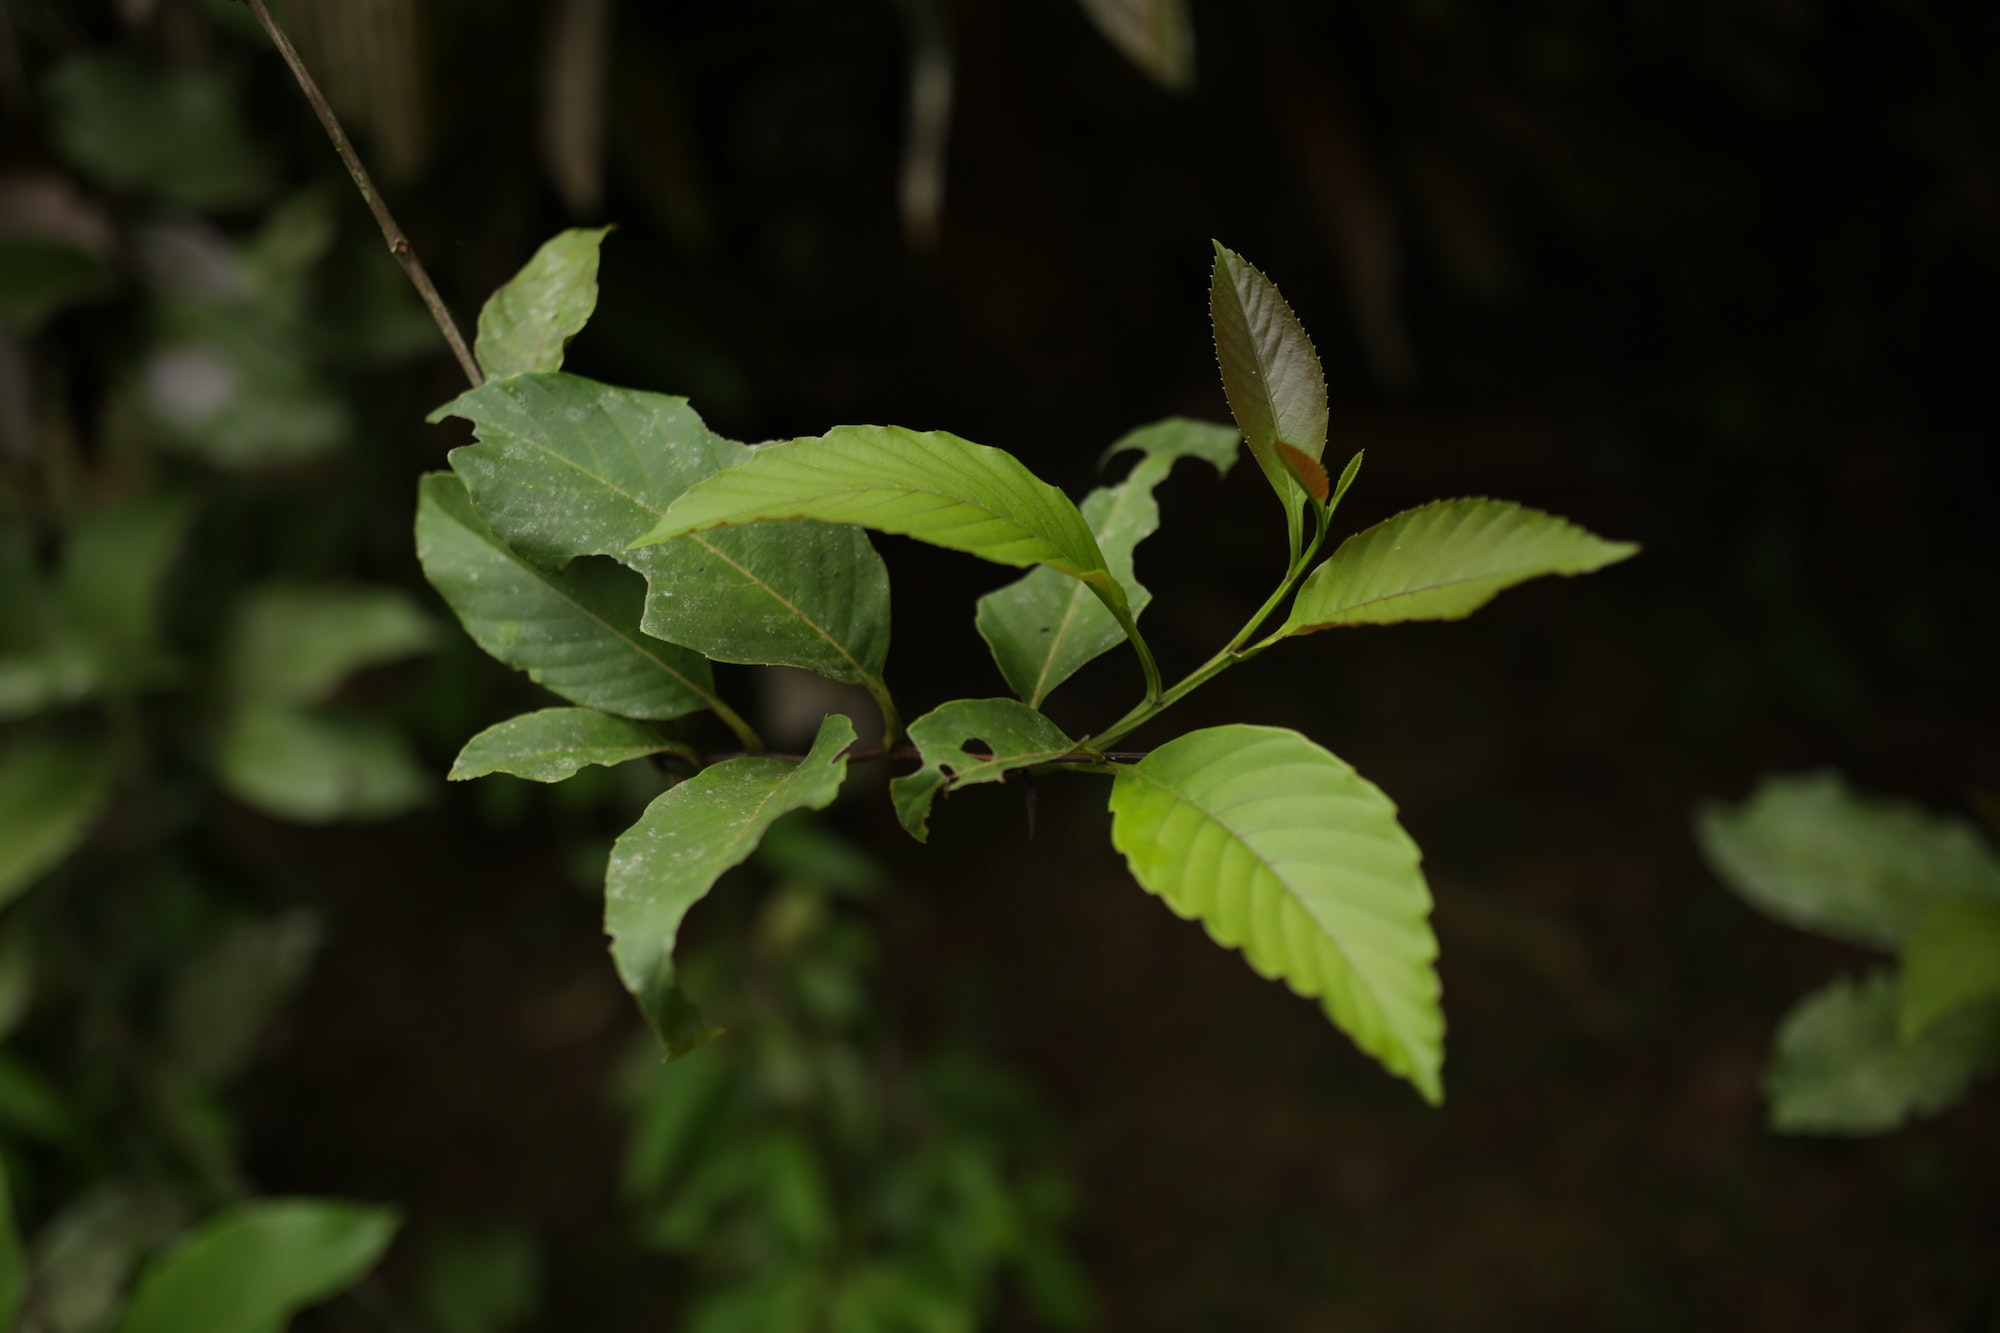 The chacruna leaf is one of the main ingredients in ayahuasca.